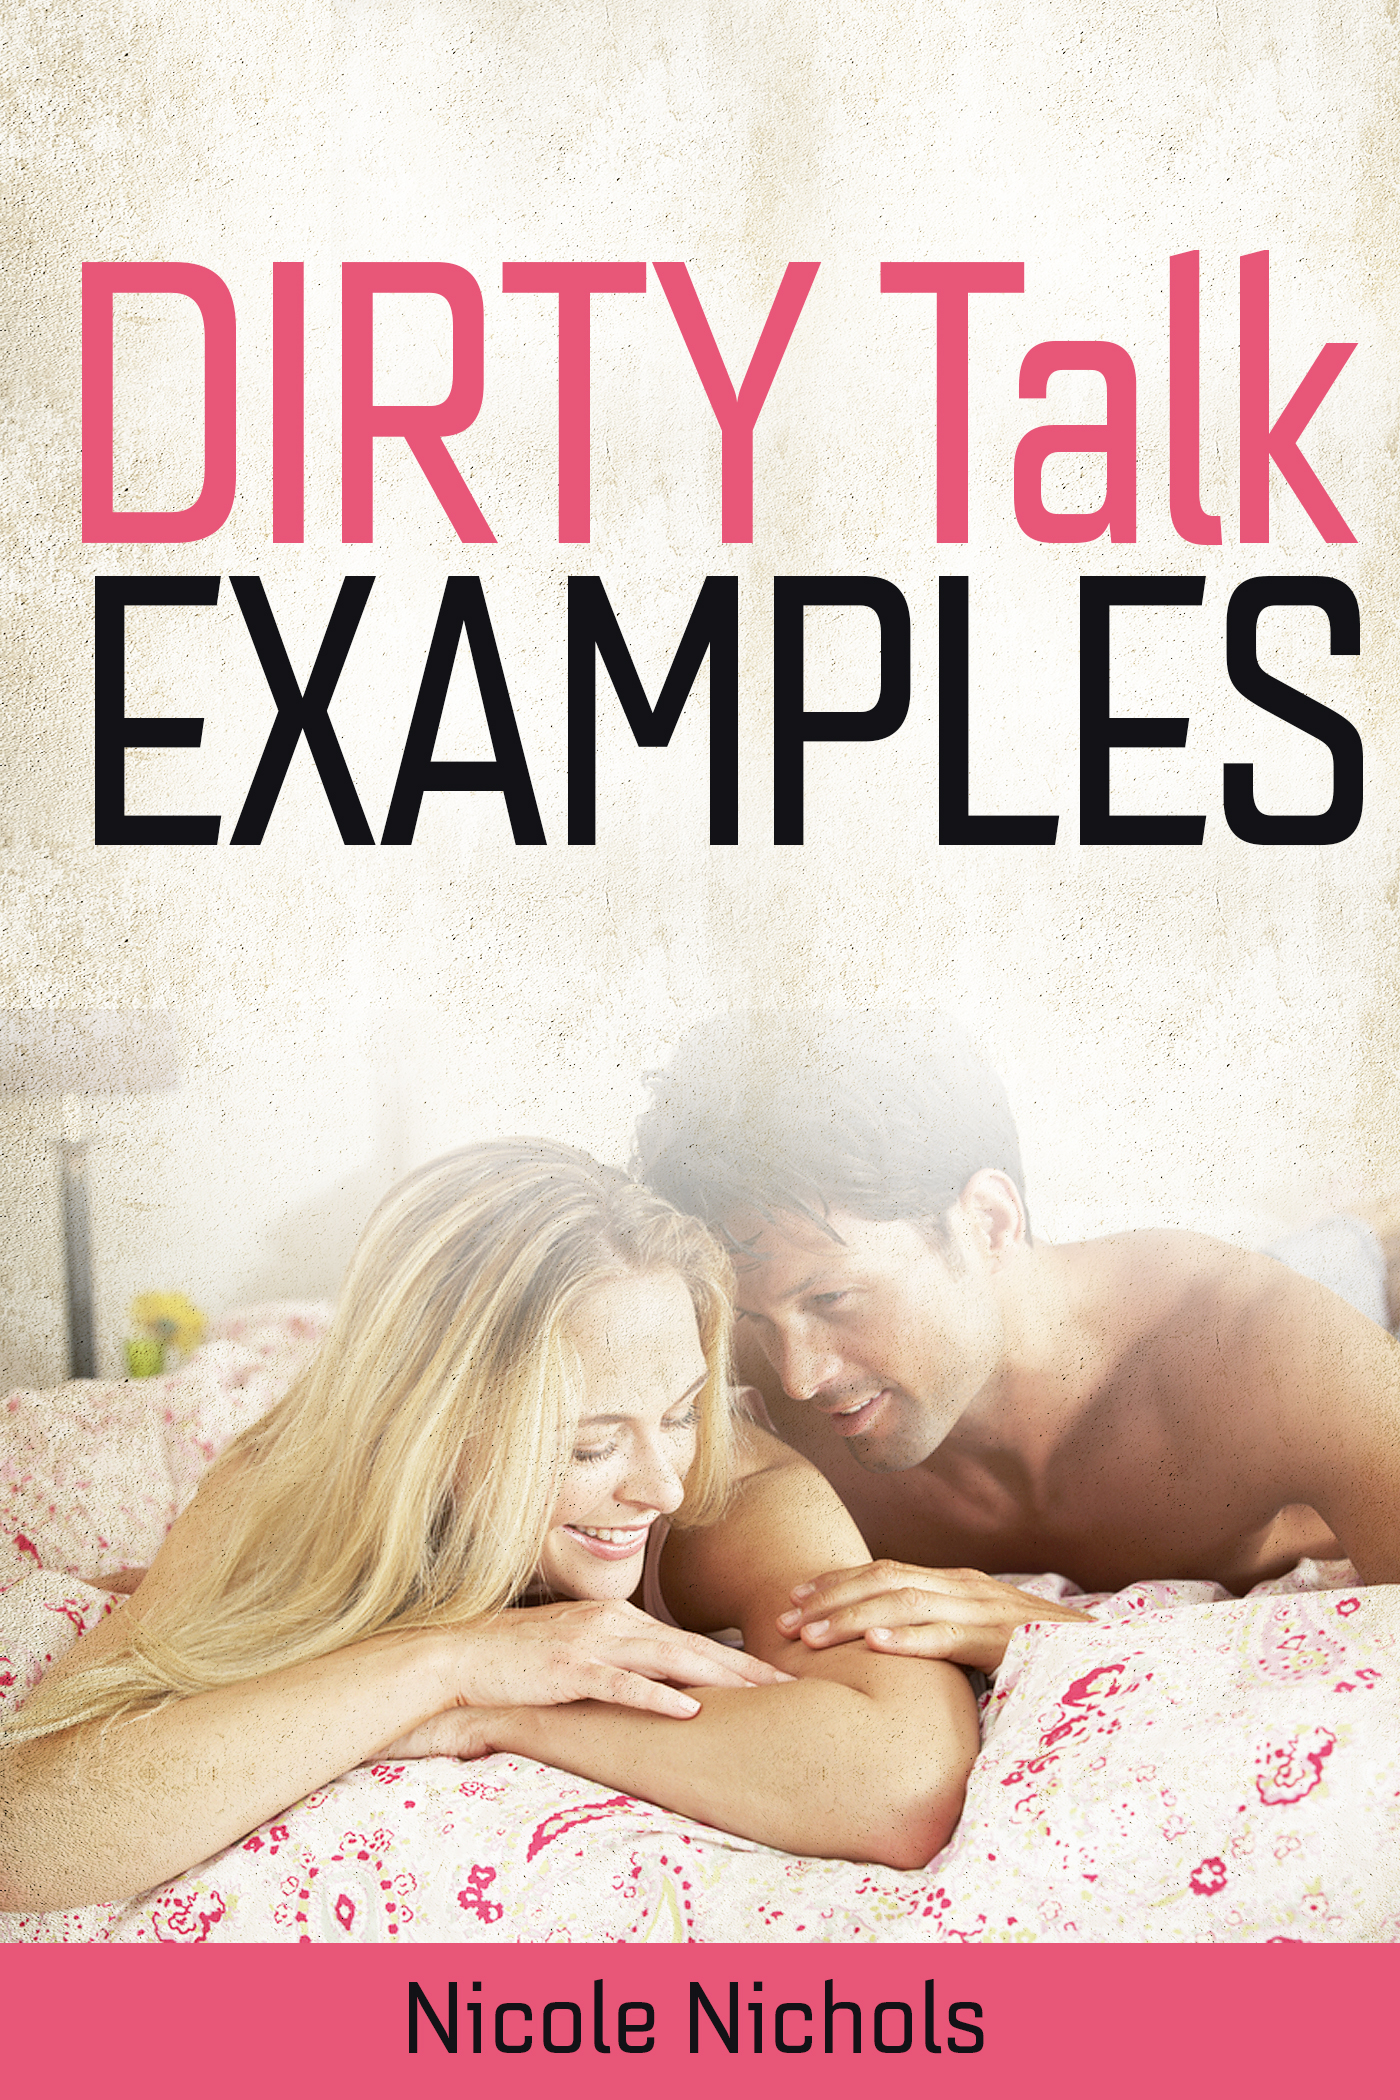 Dirty talk examples